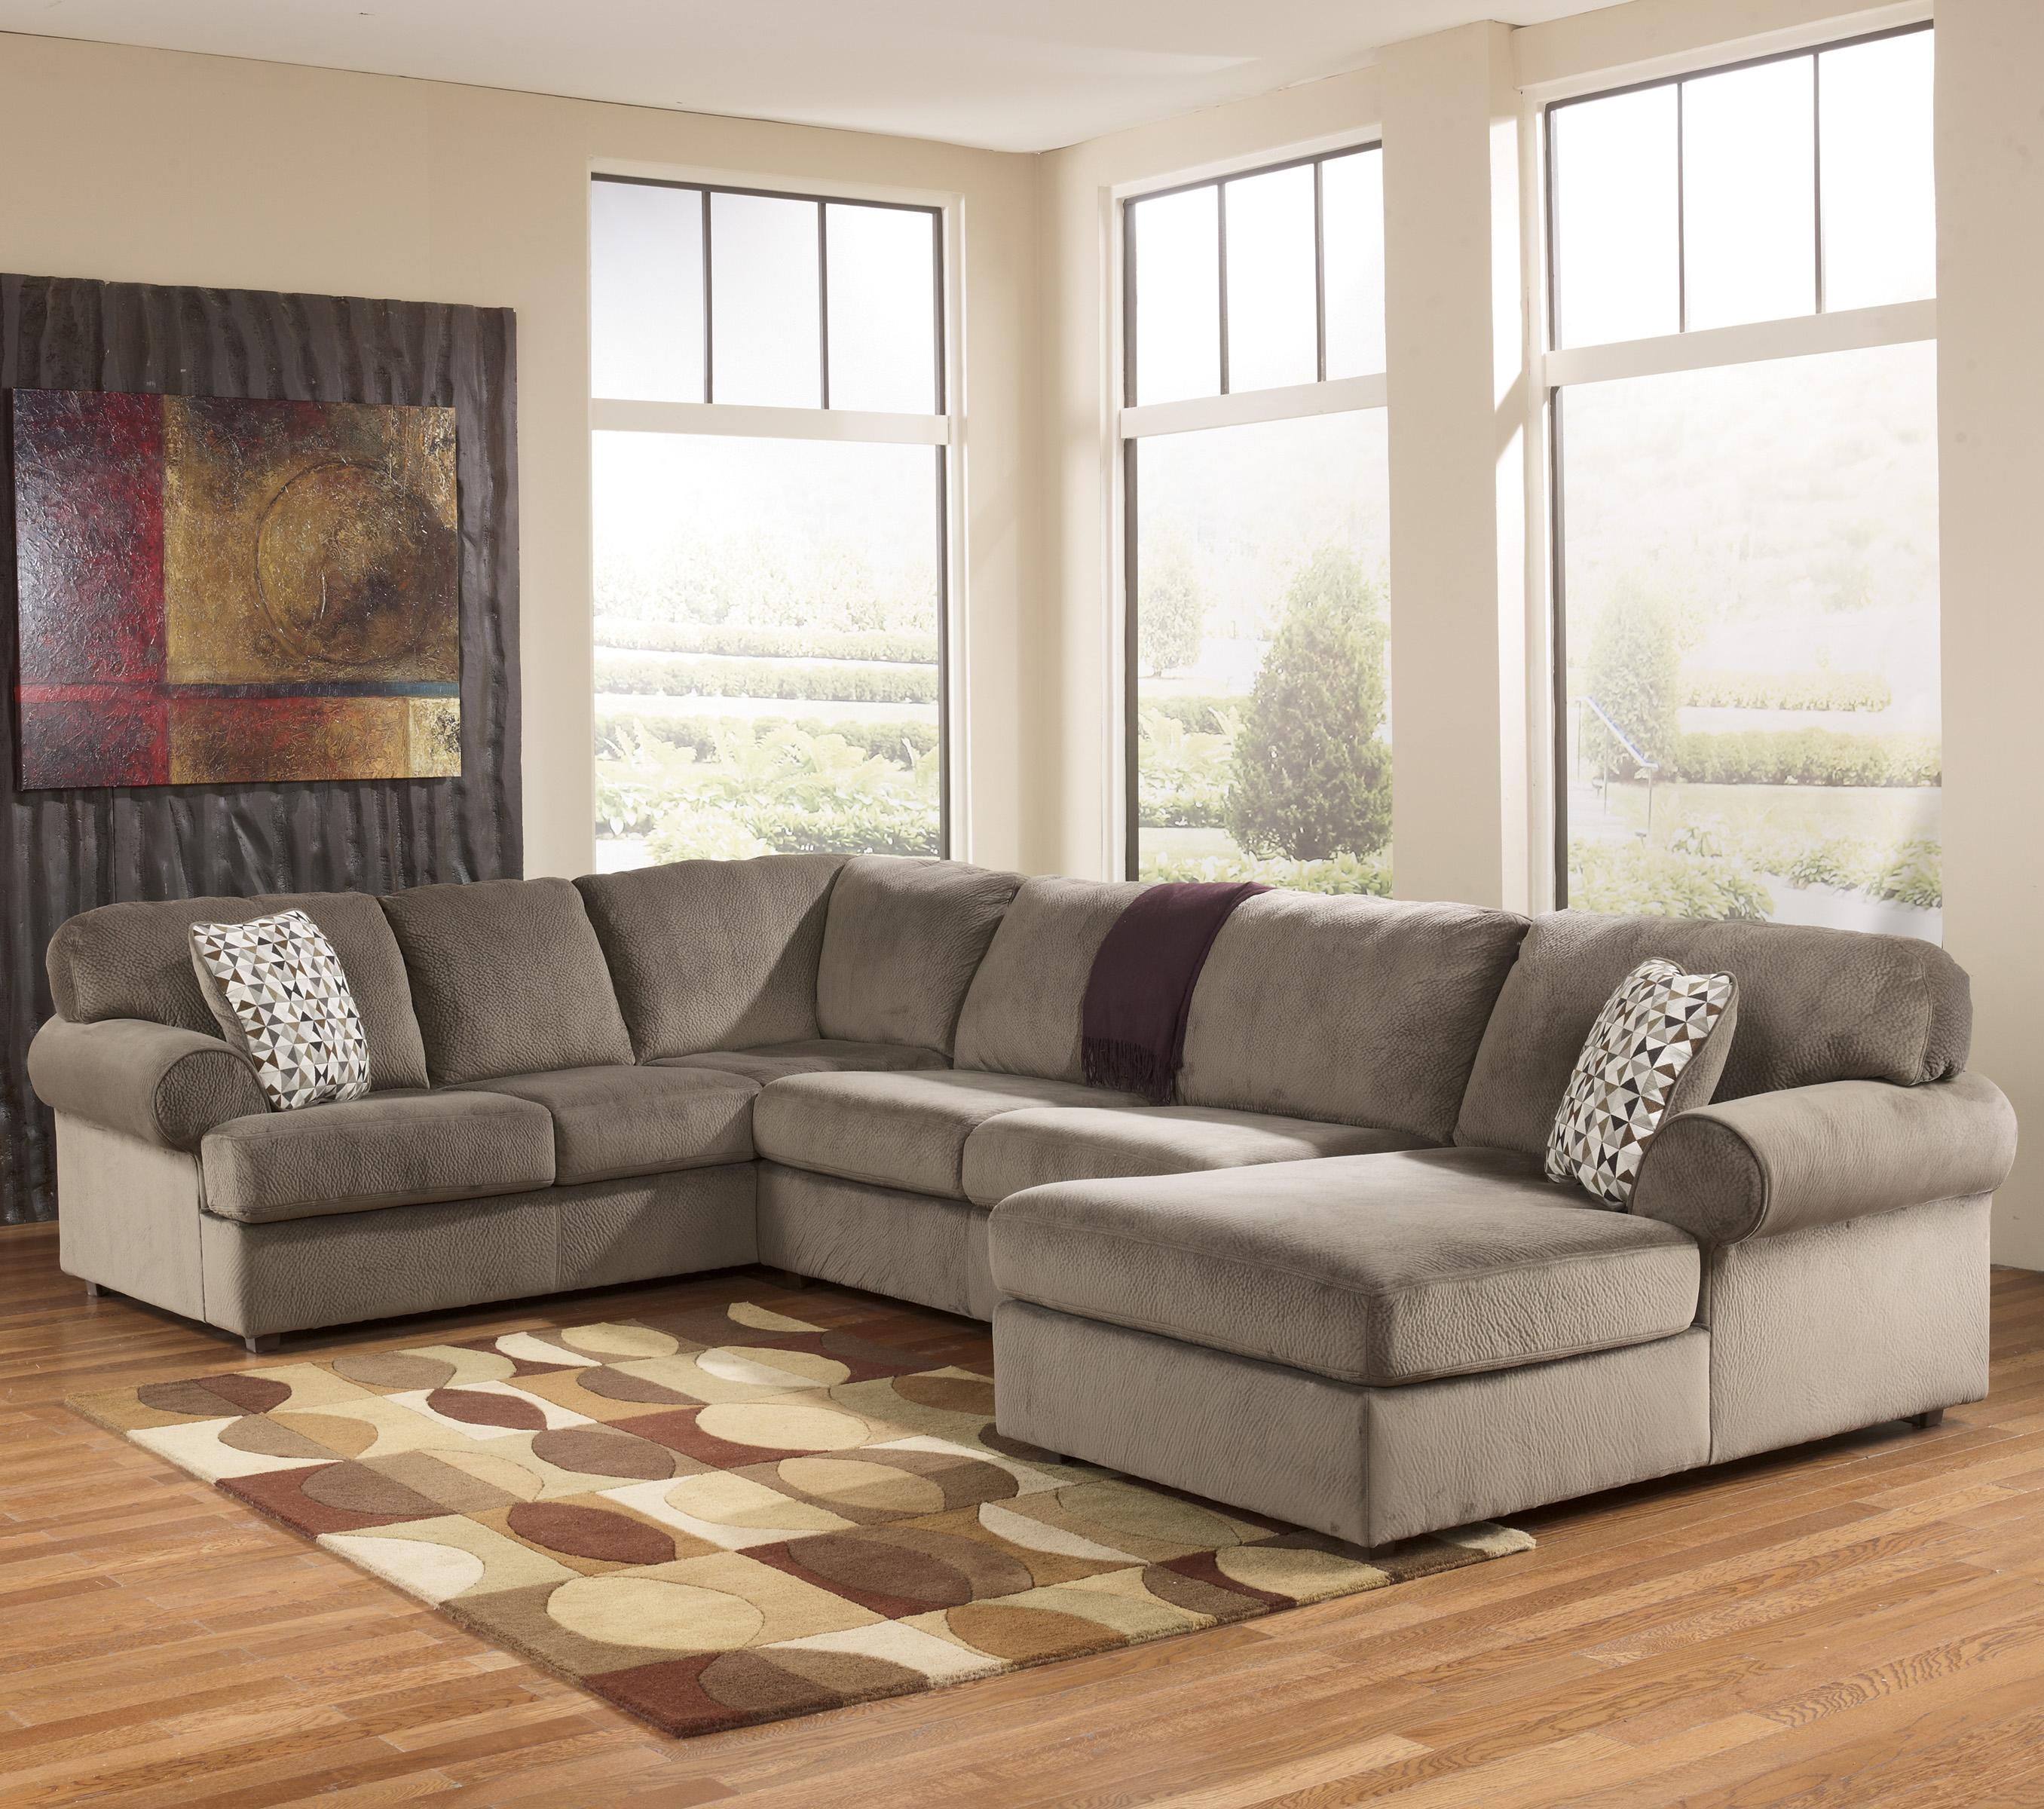 Signature Design by Ashley Jessa Place - Dune Casual Sectional Sofa with Right Chaise - AHFA - Sofa Sectional Dealer Locator : jessa place dune sectional dimensions - Sectionals, Sofas & Couches